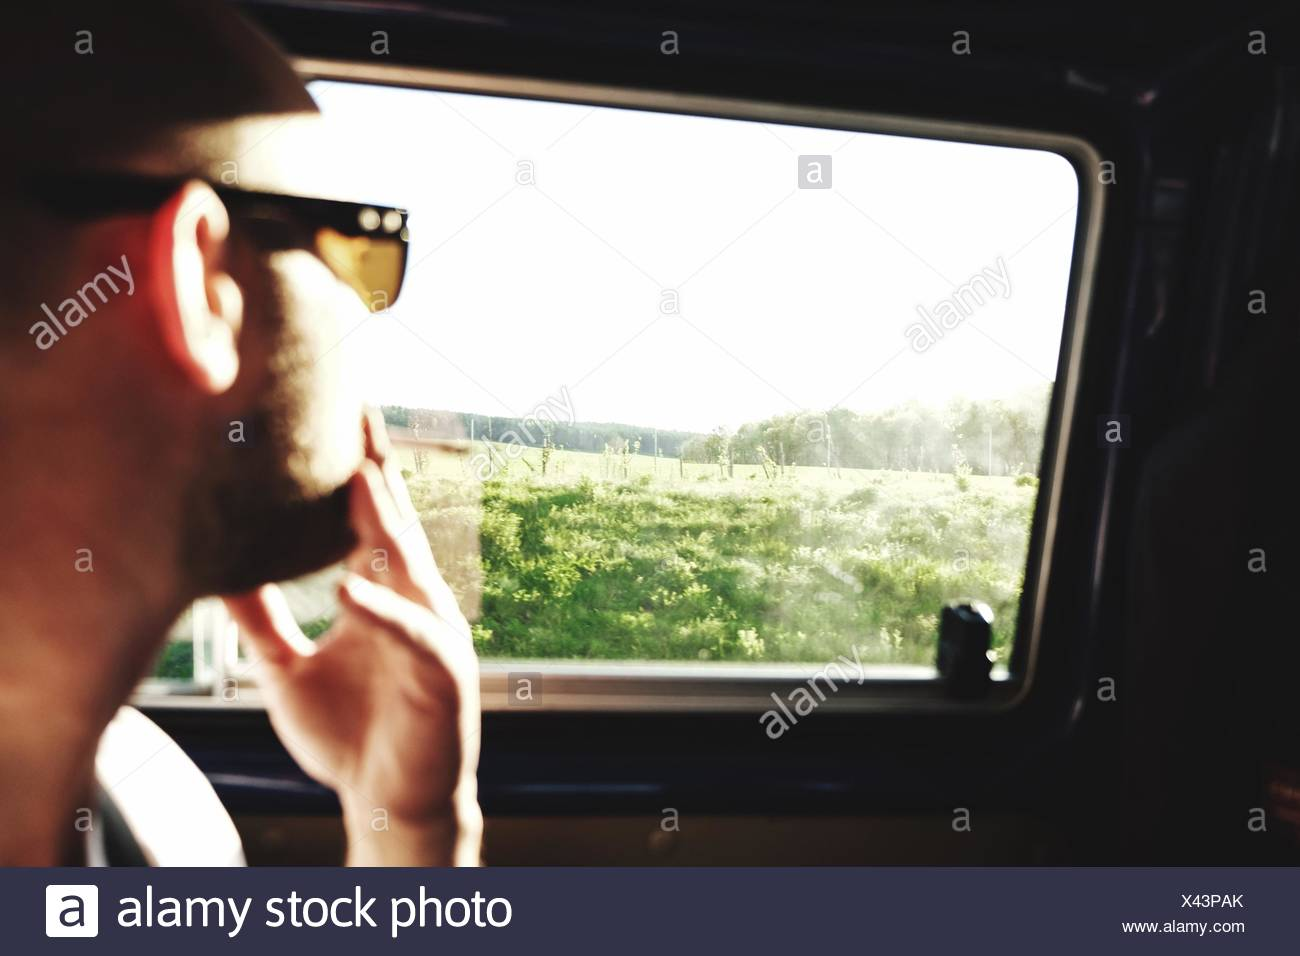 Man Looking At Trees Through Car Window - Stock Image